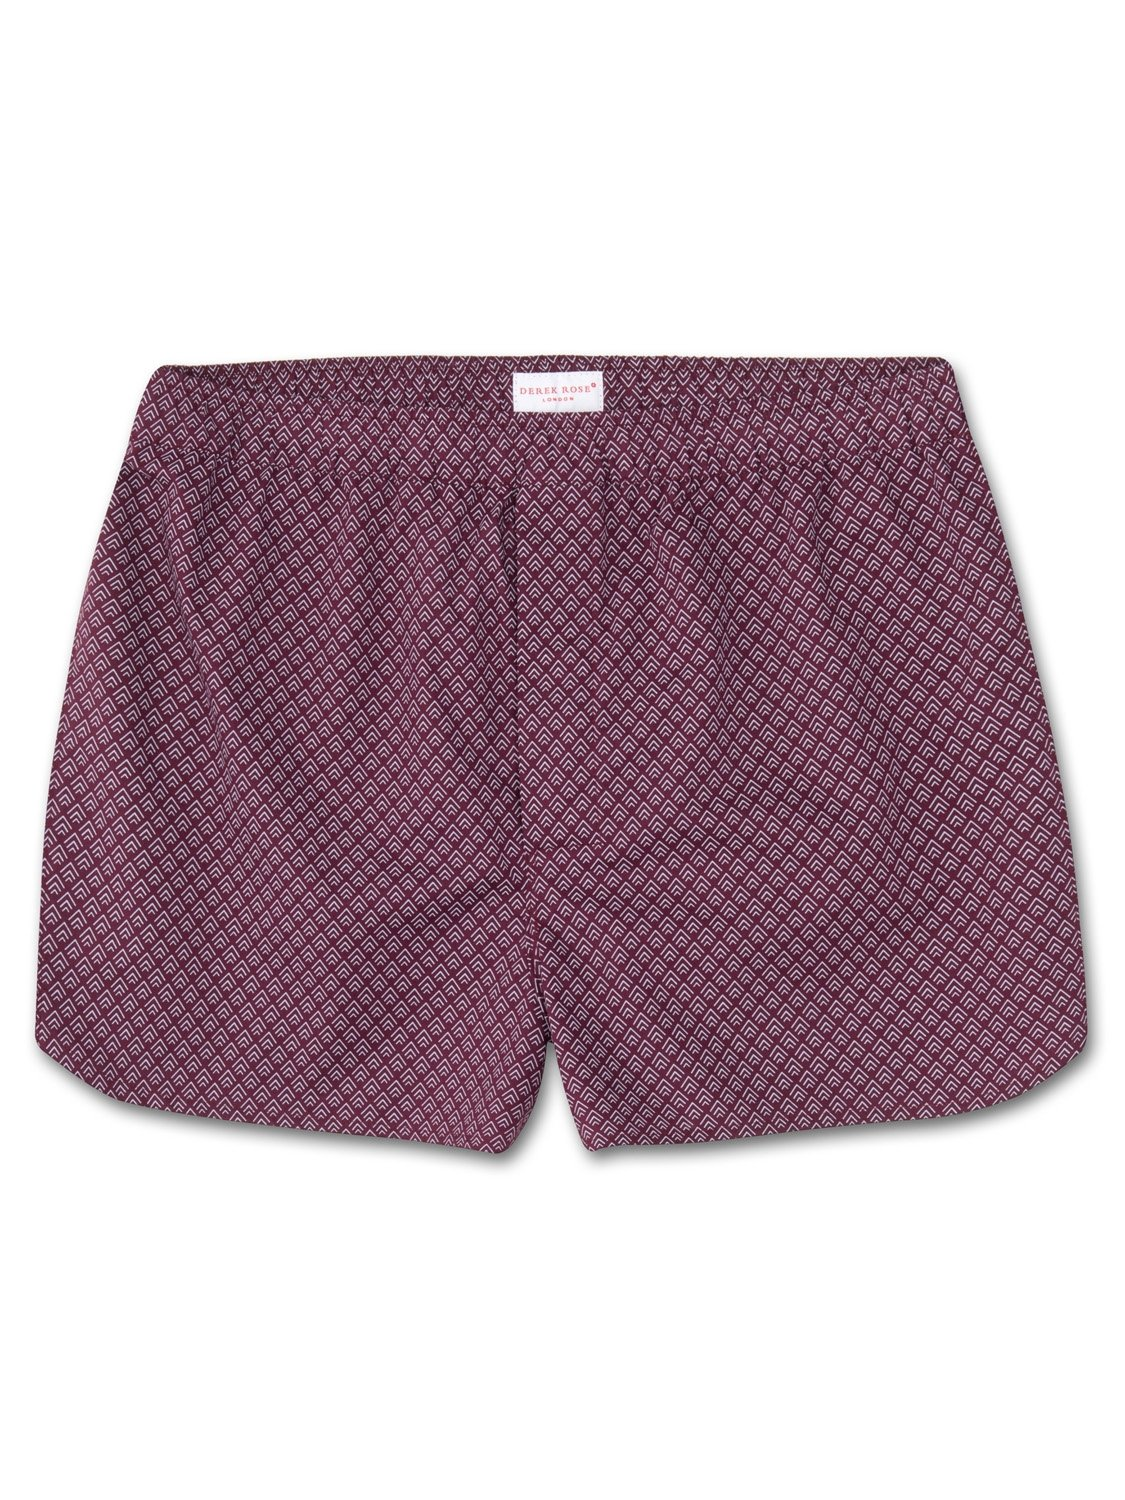 Men's Modern Fit Boxer Shorts Nelson 66 Cotton Batiste Burgundy